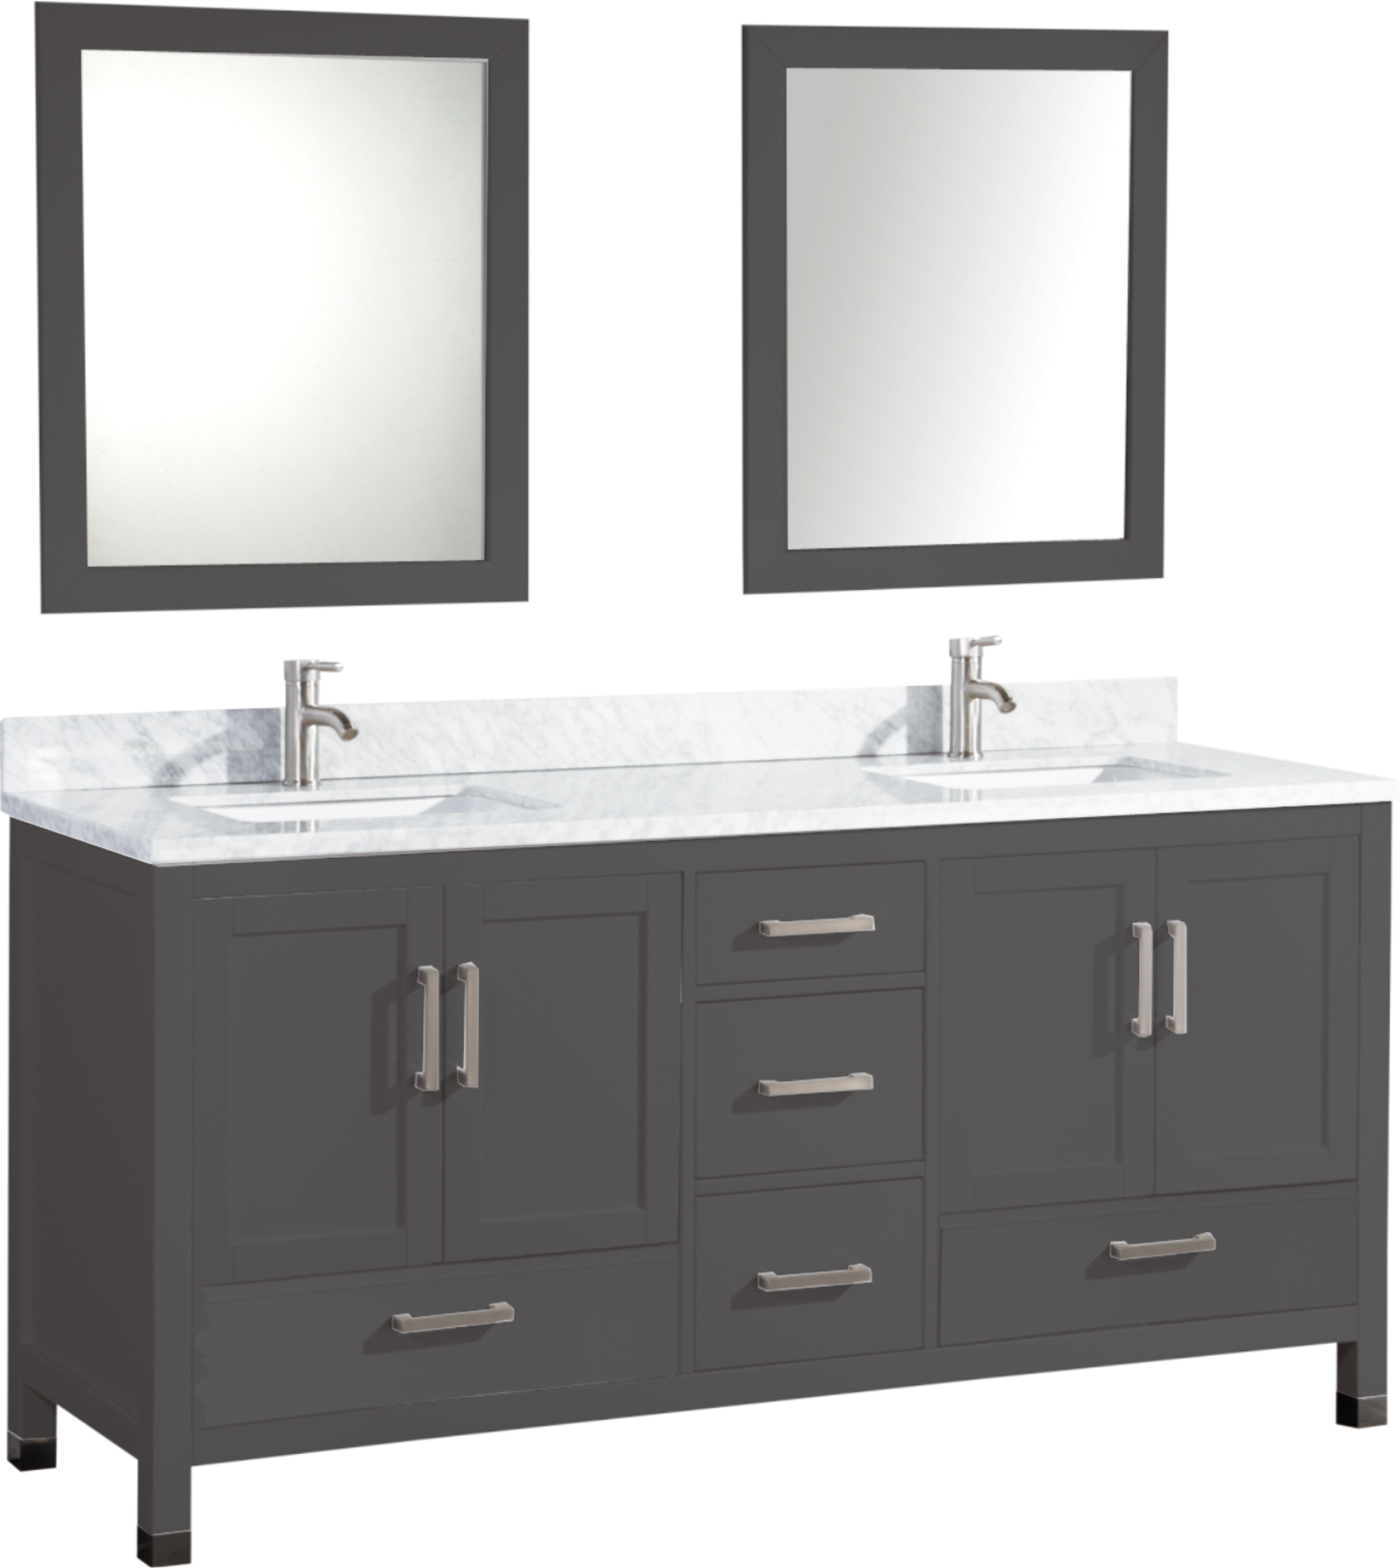 double tops marble carrara vanity top james walnut with vanities in basin w bristol signature p whitewashed martin white